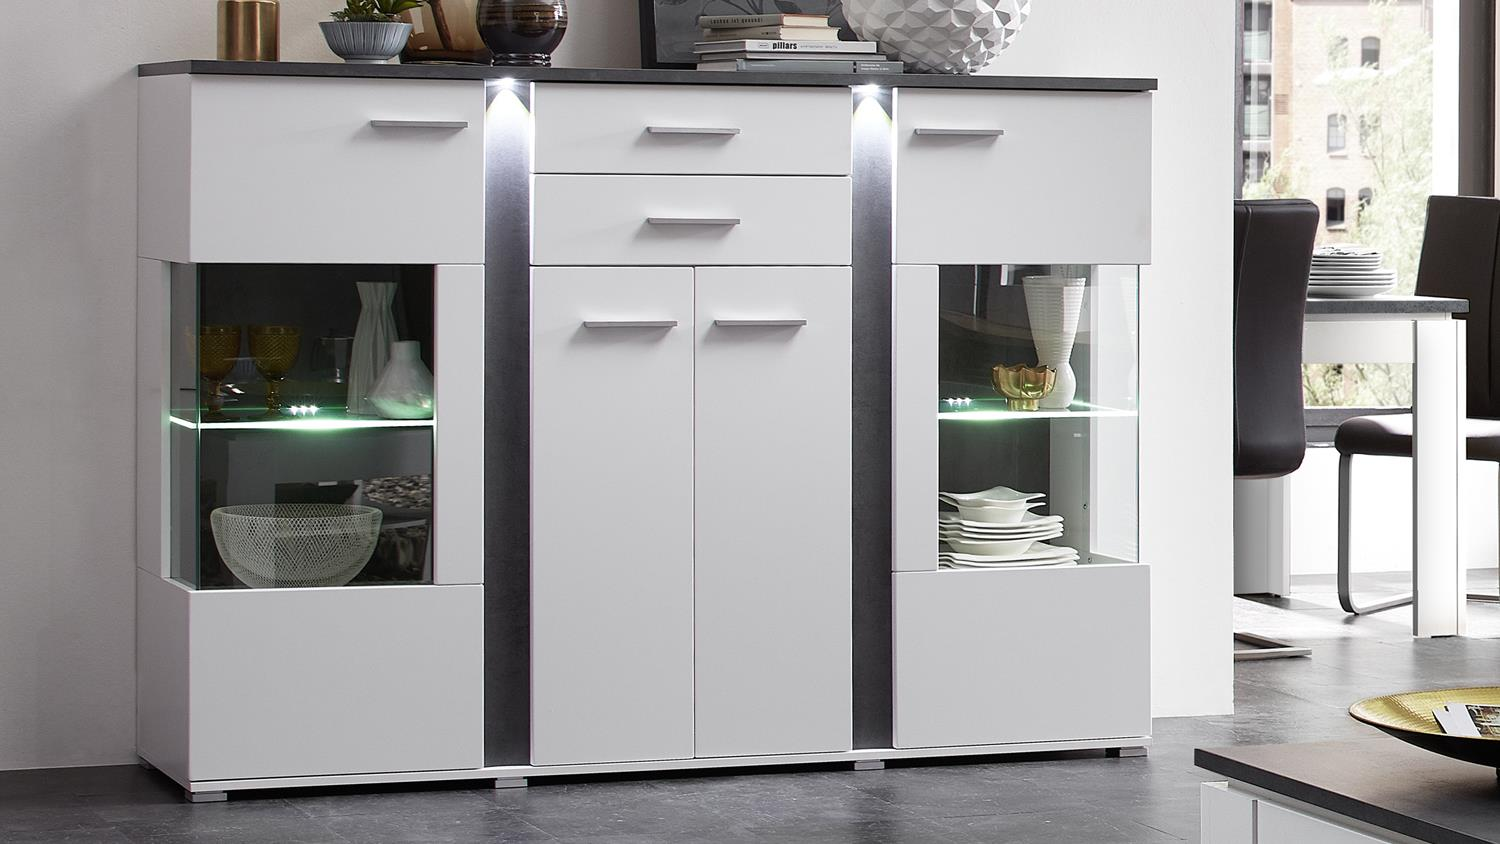 Highboard Spurt Mit Led In Supermatt Weiß Und Betonoptik